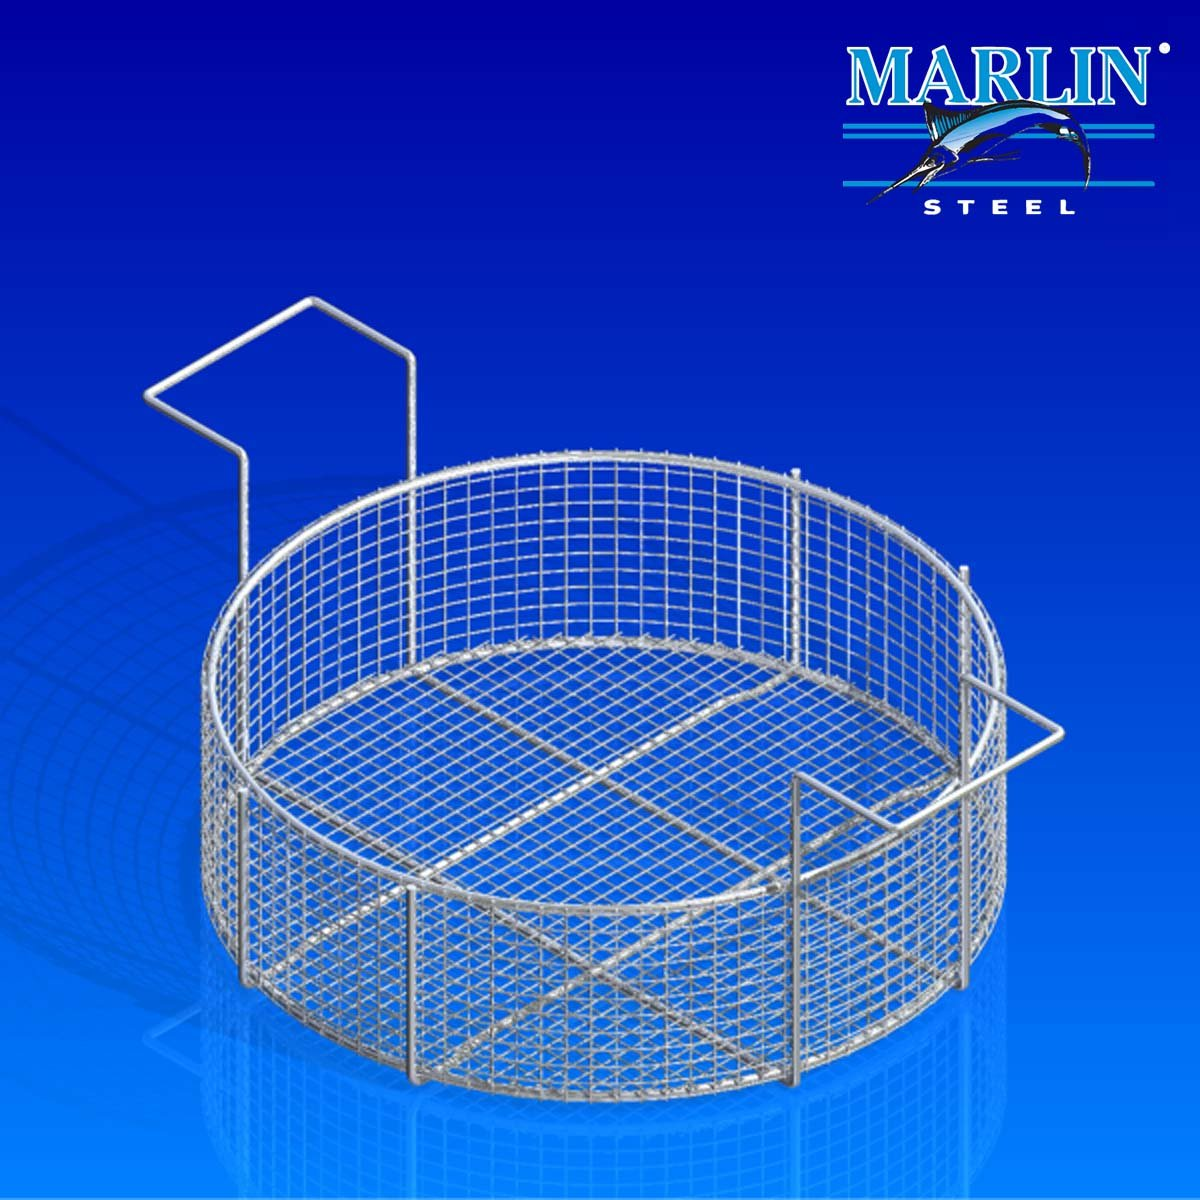 Marlin Steel Basket with Handles 722001